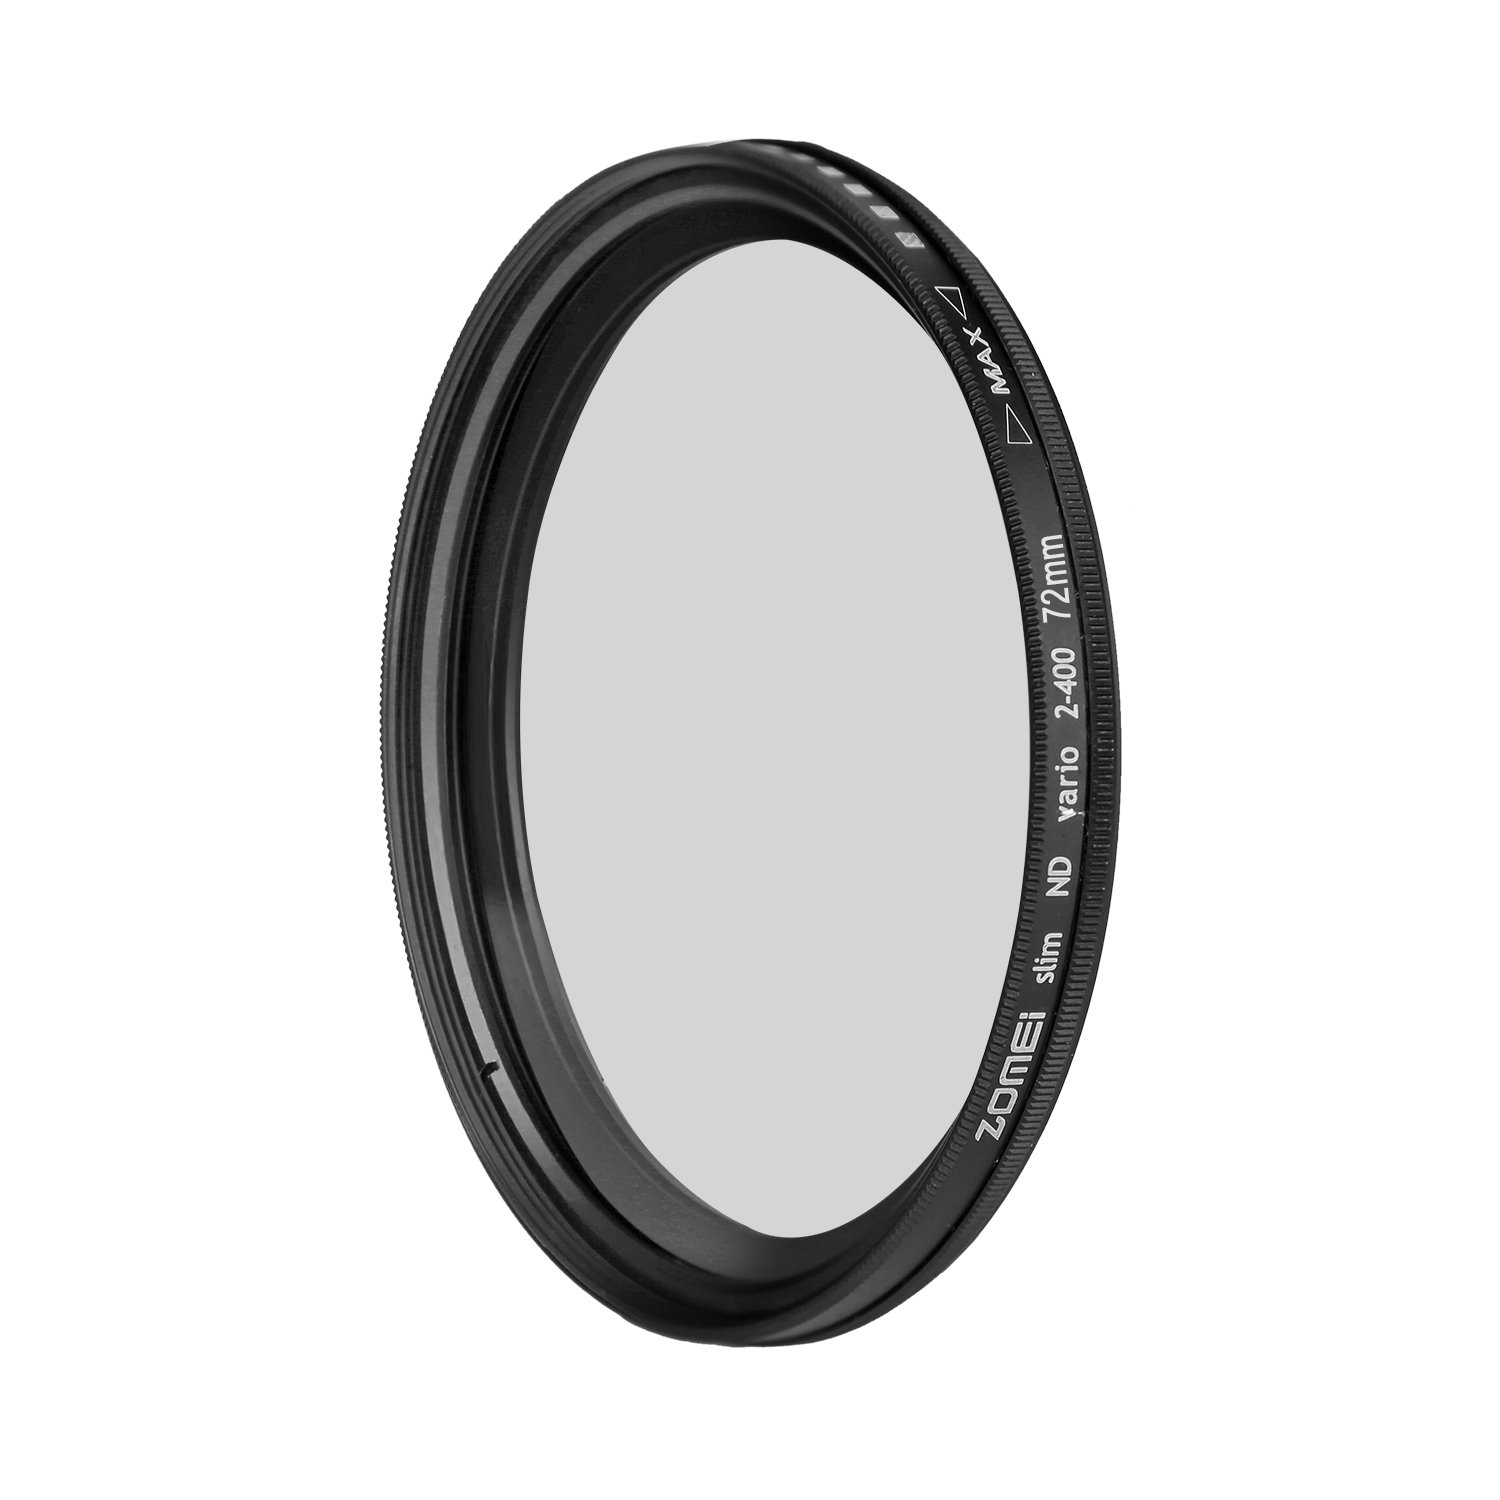 ZOMEI 58mm ND Fader Neutral Density Adjustable Variable Filter with AGC Optical Glass ND2 to ND400